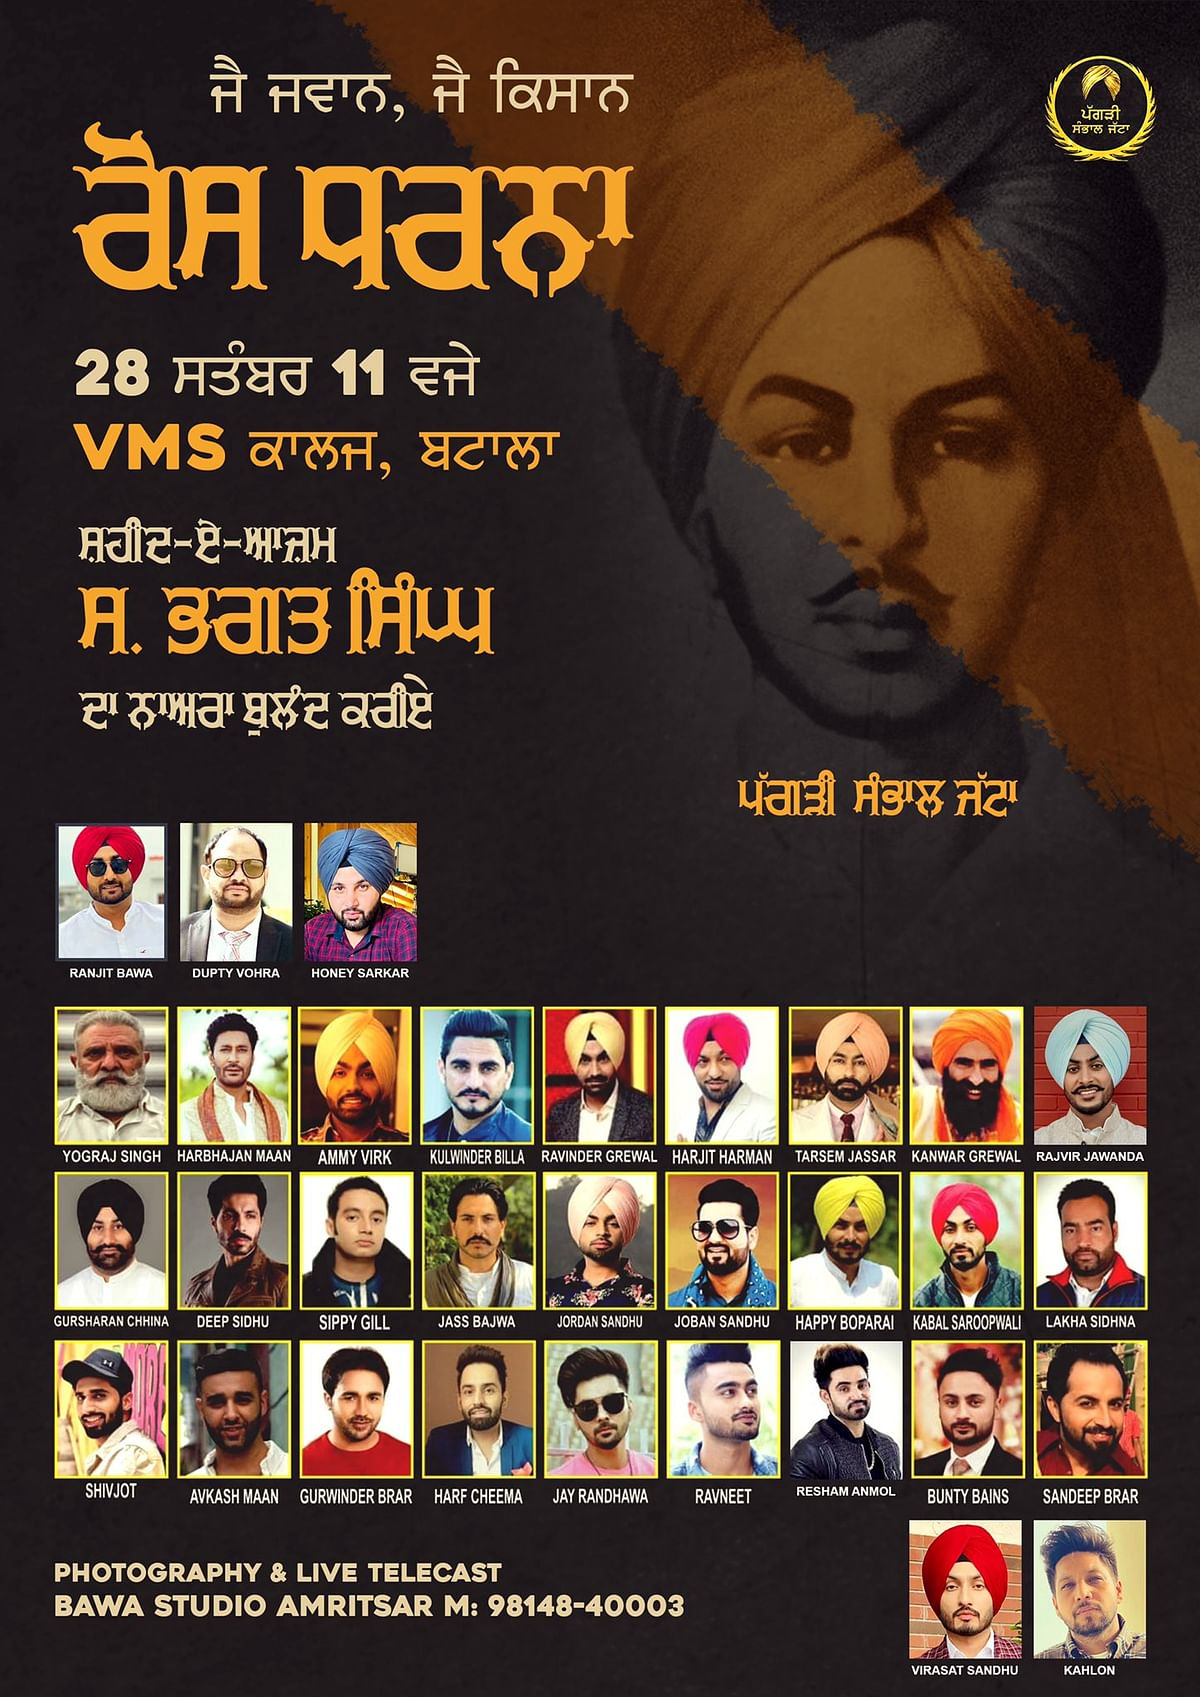 Poster of the 28 September rally at Batala.